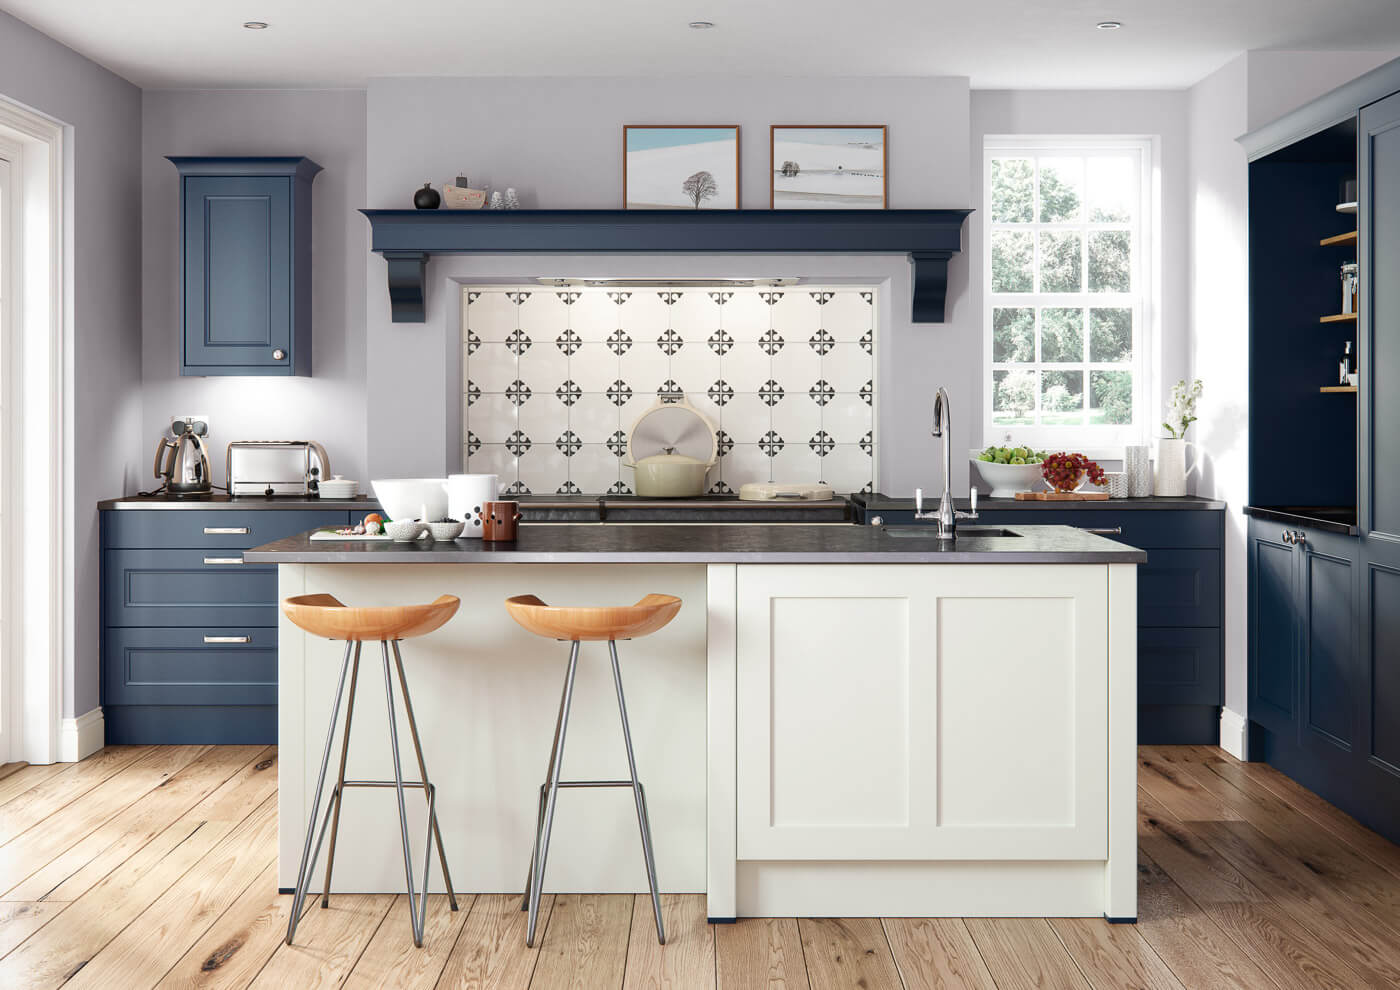 Traditional kitchens in sheffield get a free quote - Designer kitchens direct sheffield ...